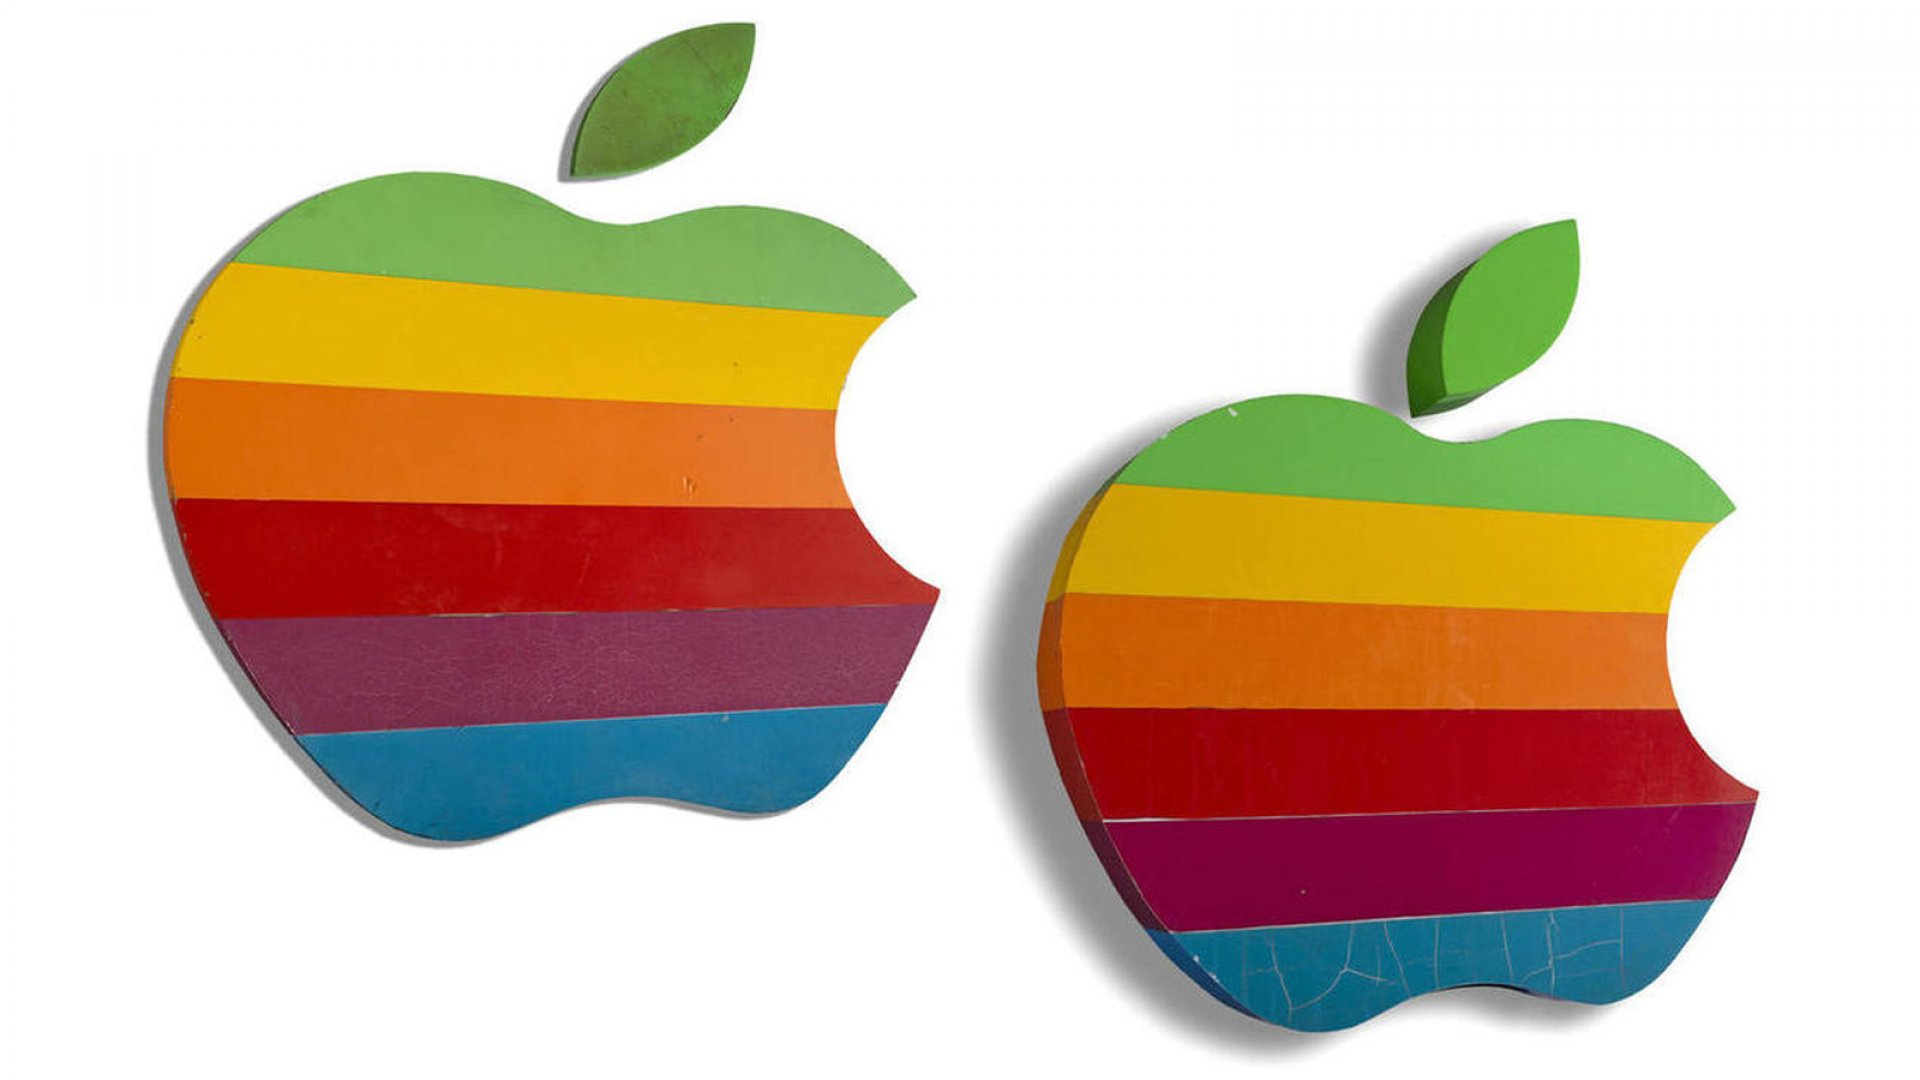 How Much Do You Think the Iconic Rainbow Apple Logos Will Sell For?